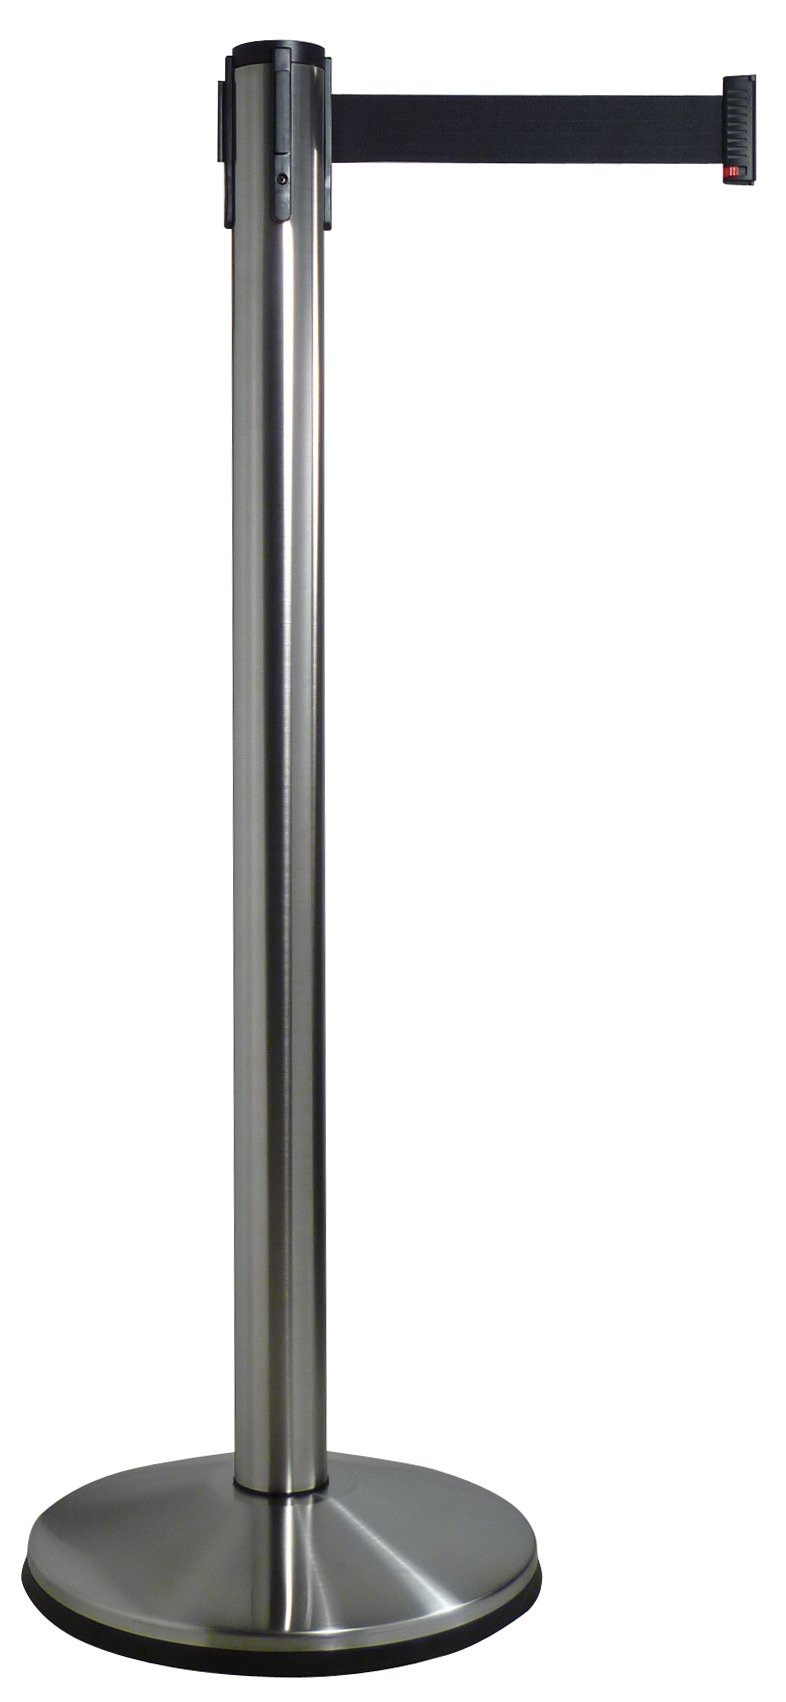 Visiontron 100PS1-BK Single Line Retractable Belt PRIME Stanchion Polished Stainless Steel w/10' Black Belt - Standard Belt End